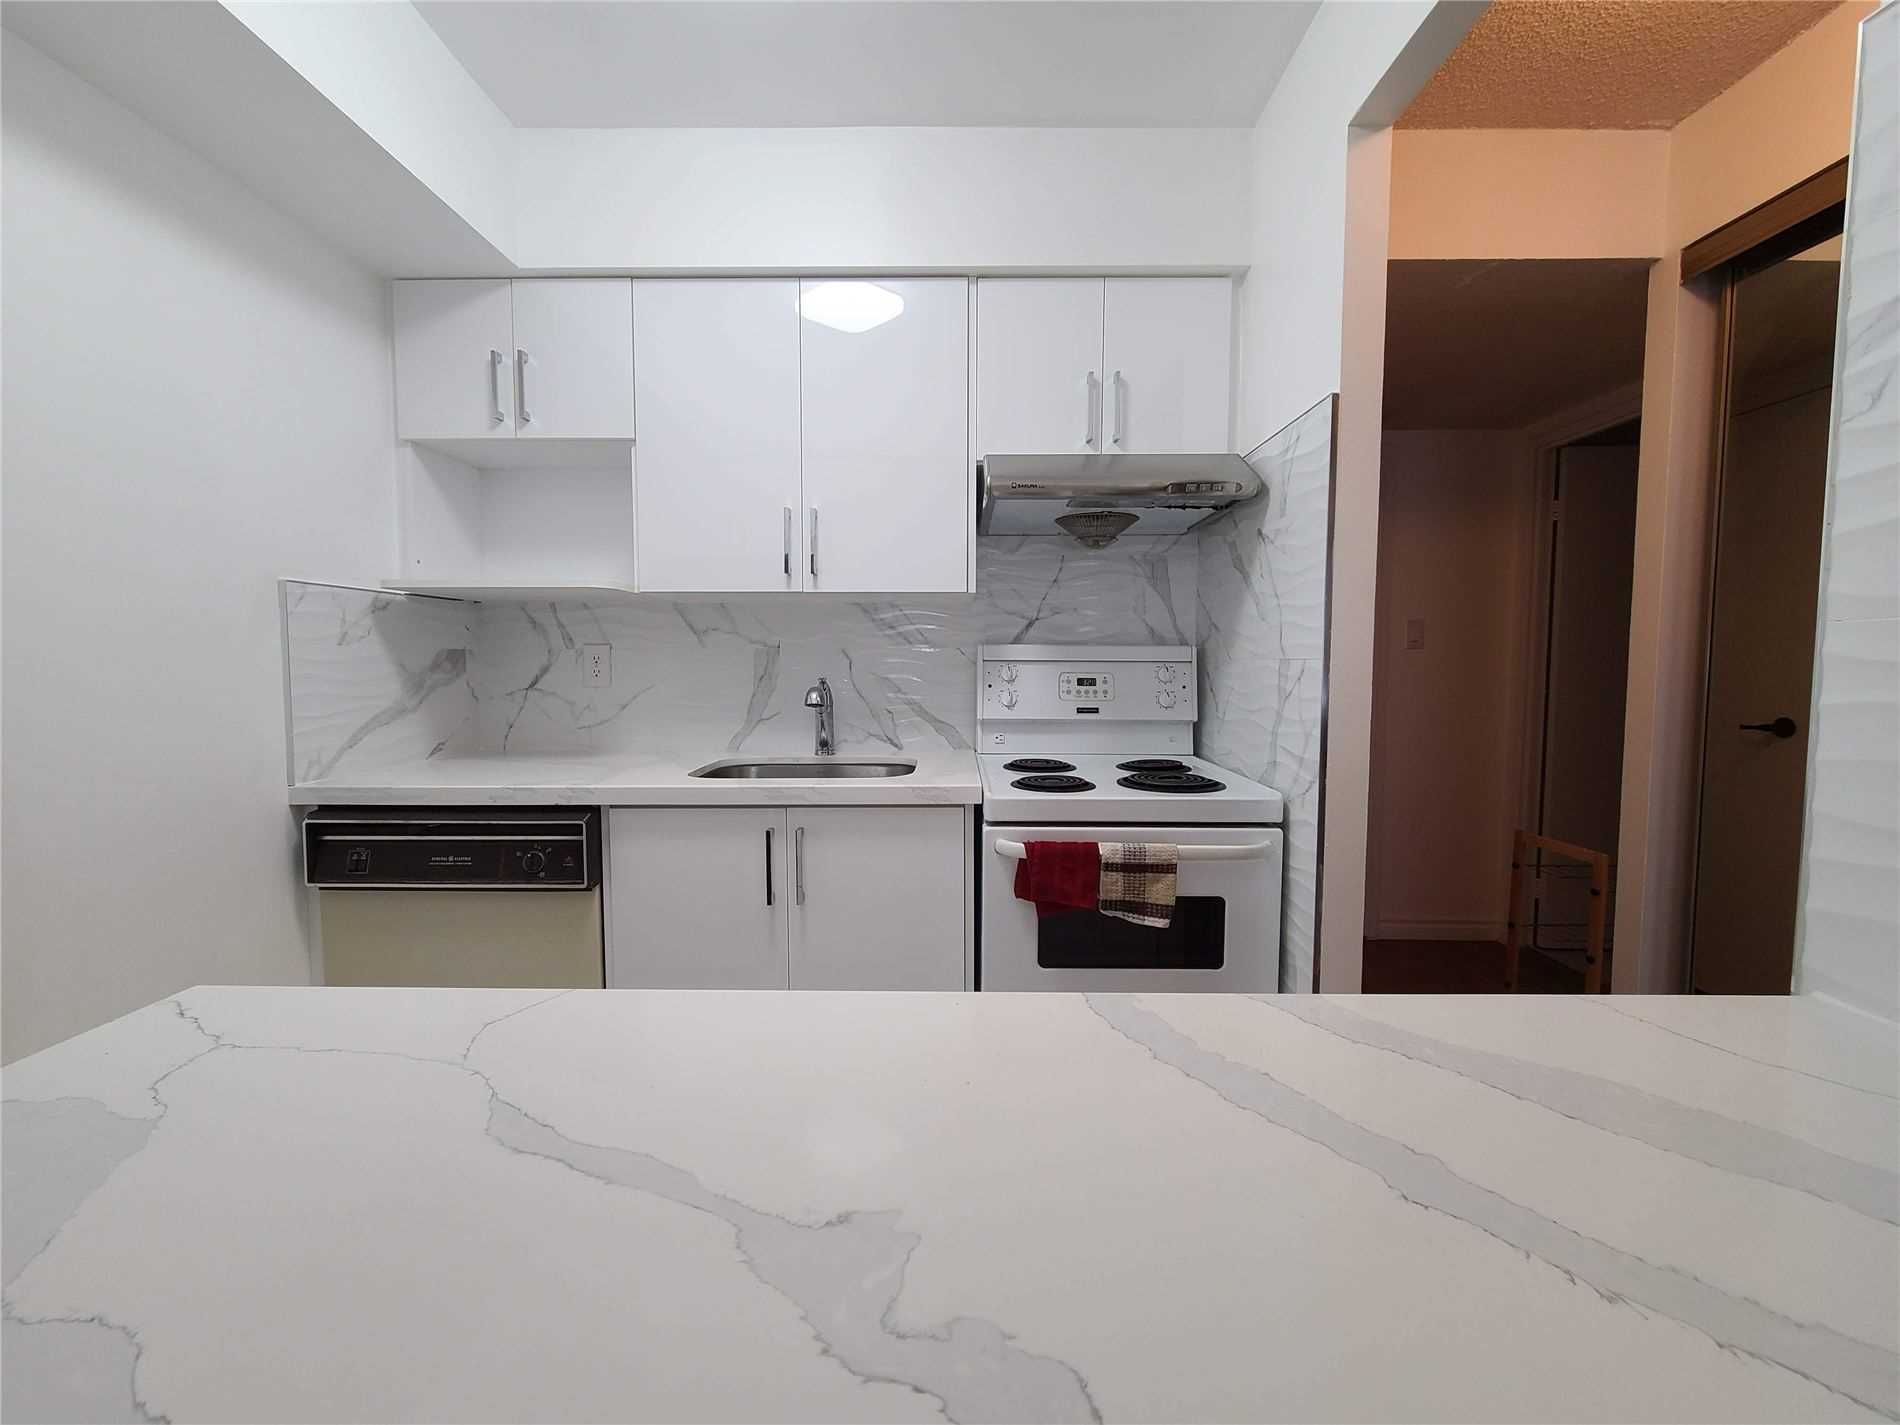 633 Bay St, unit 1202 for rent in Toronto - image #1